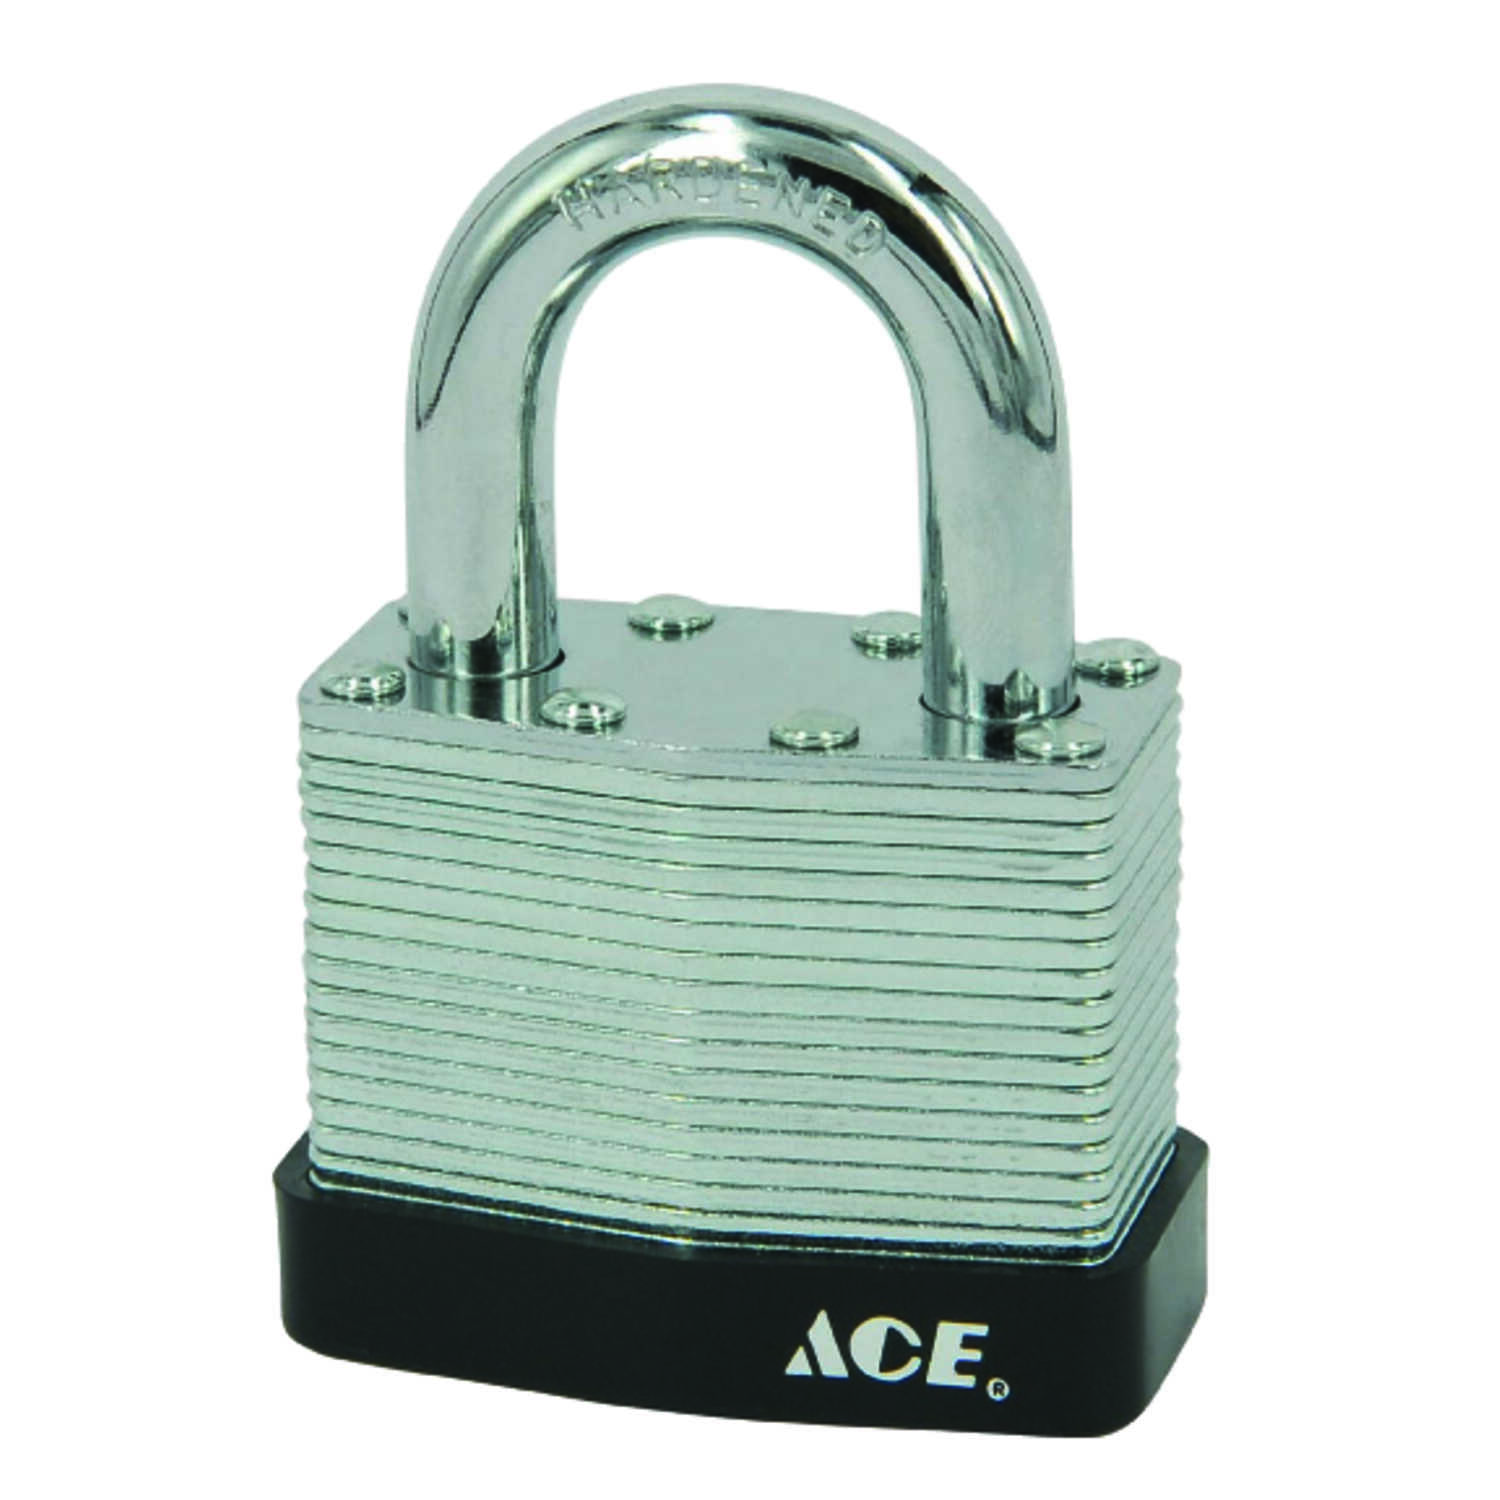 Ace  1-5/16 in. H x 1-9/16 in. W x 1-1/2 in. L Double Locking  Padlock  1 pk Keyed Alike Steel